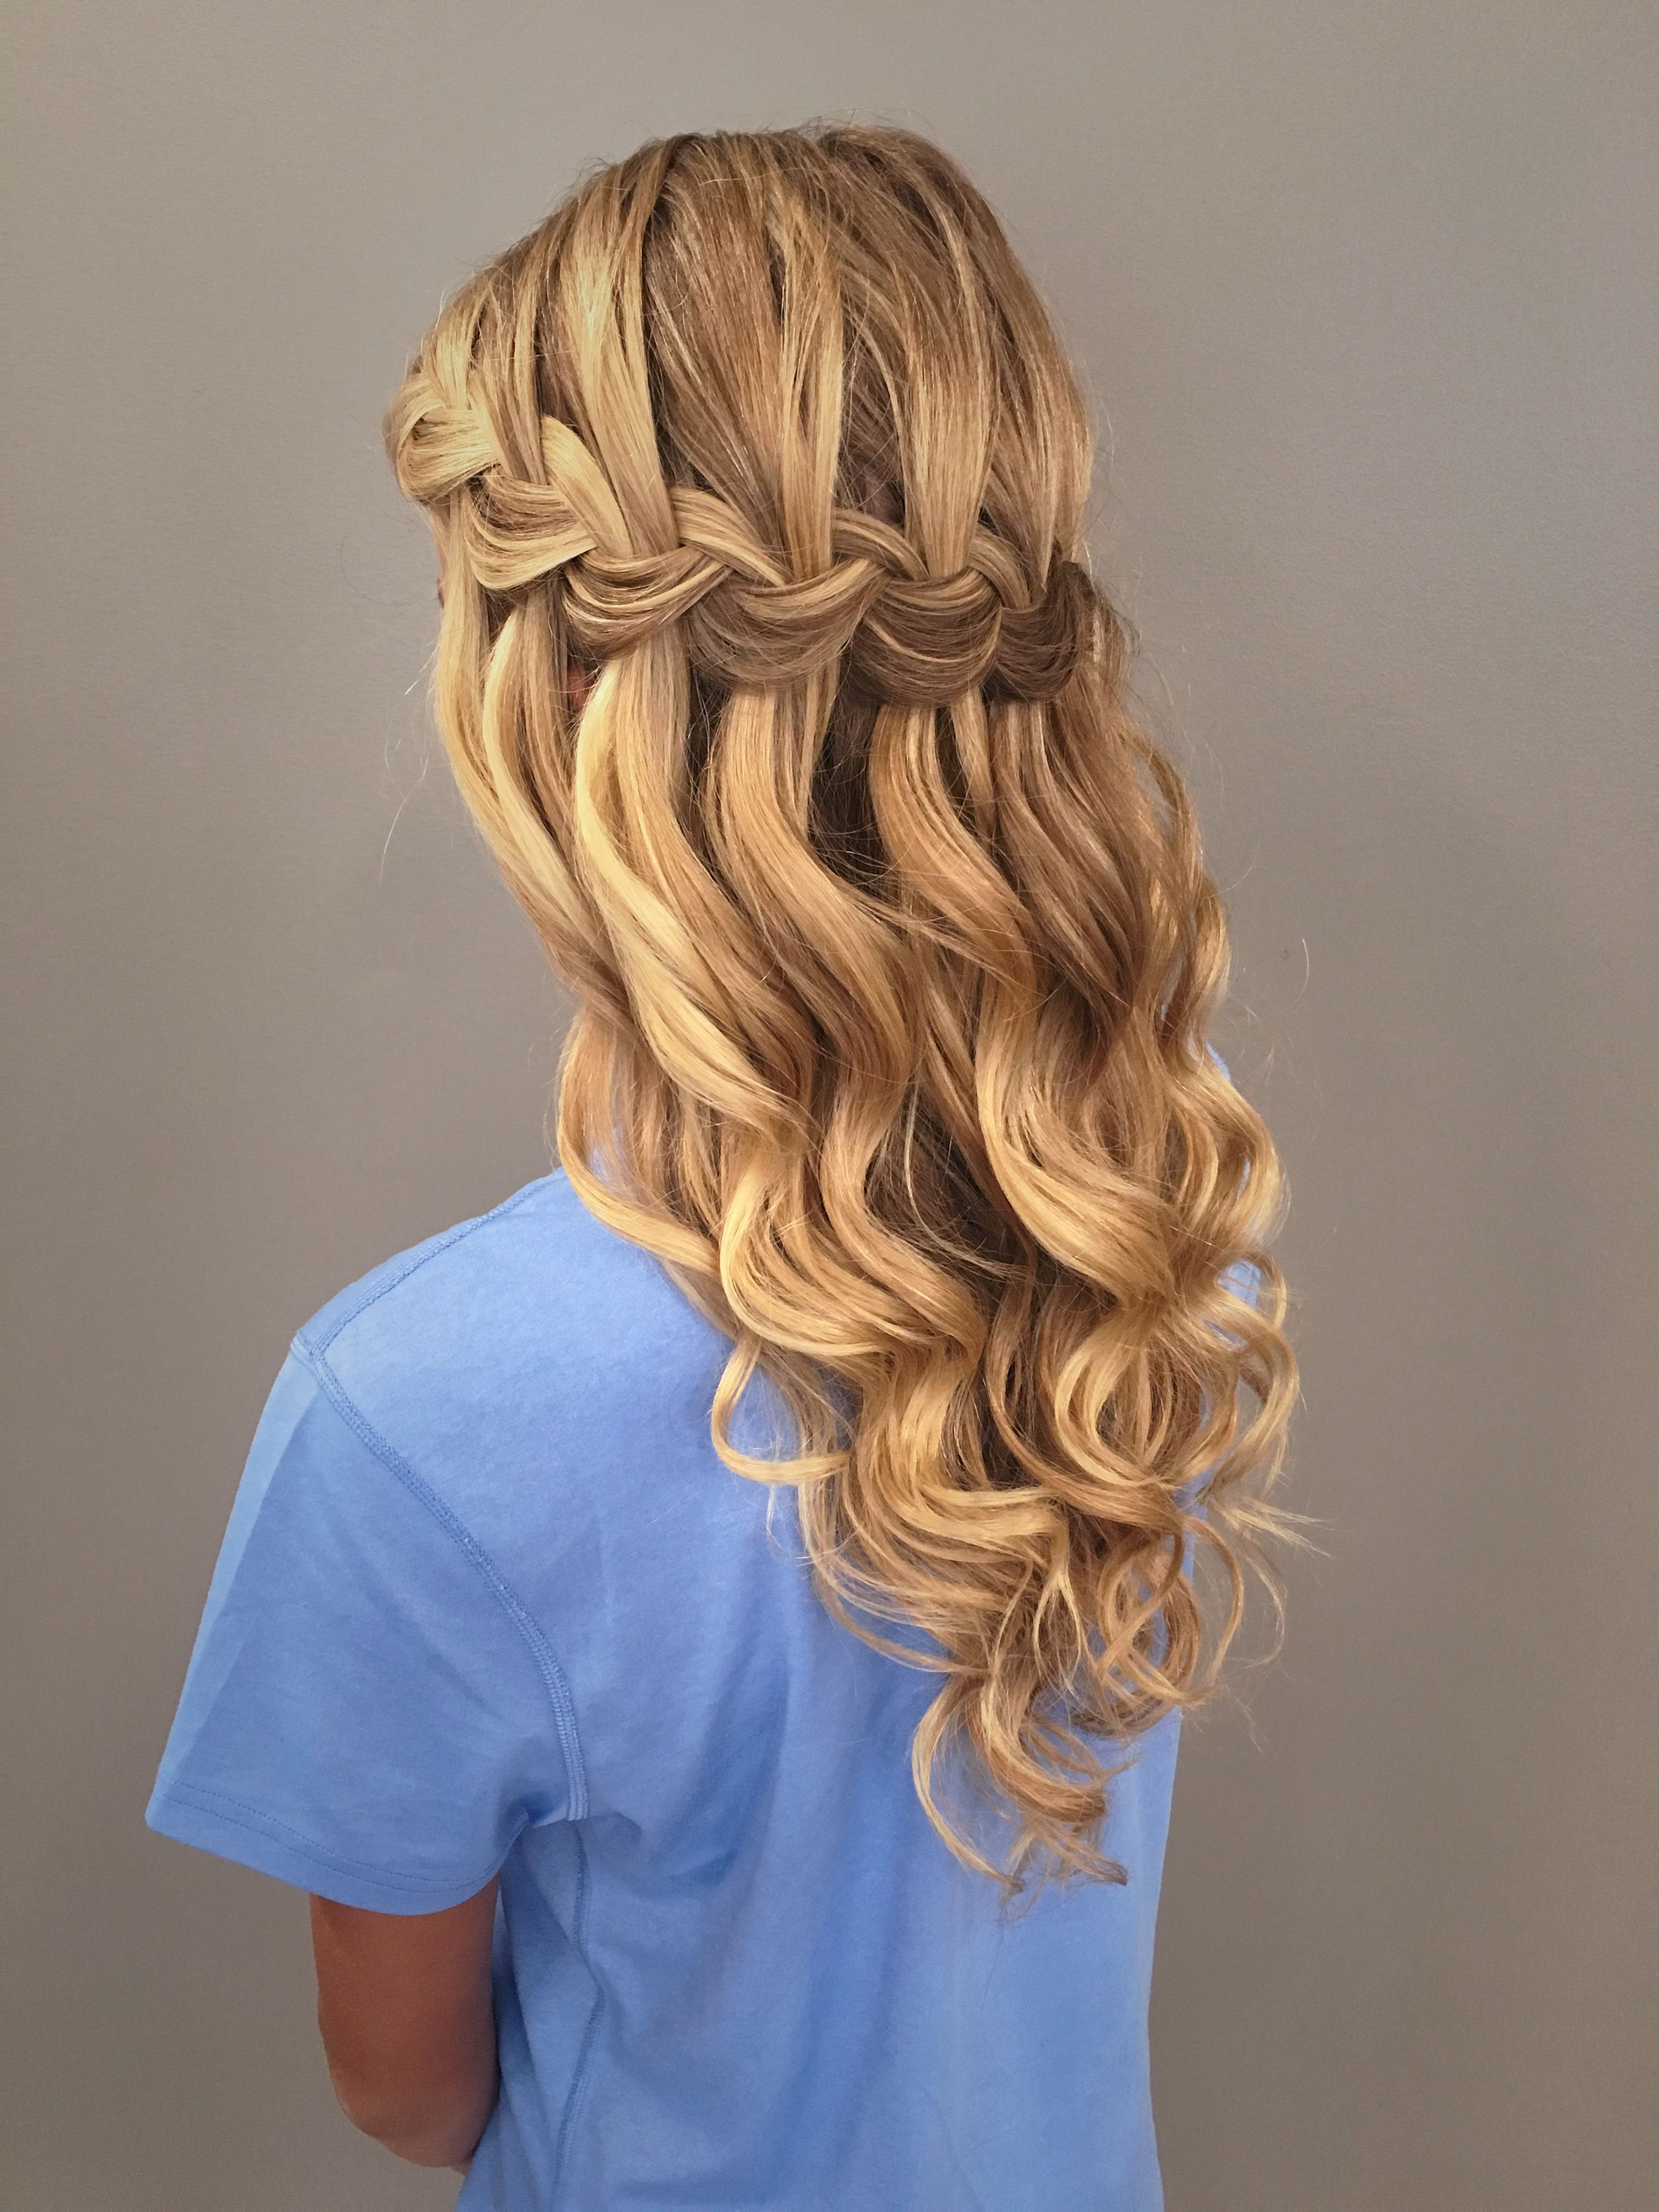 Waterfall Braid With Mermaid Waves! Great Bridal, Prom, Or Pertaining To Recent Messy Curly Mermaid Braid Hairstyles (View 19 of 20)